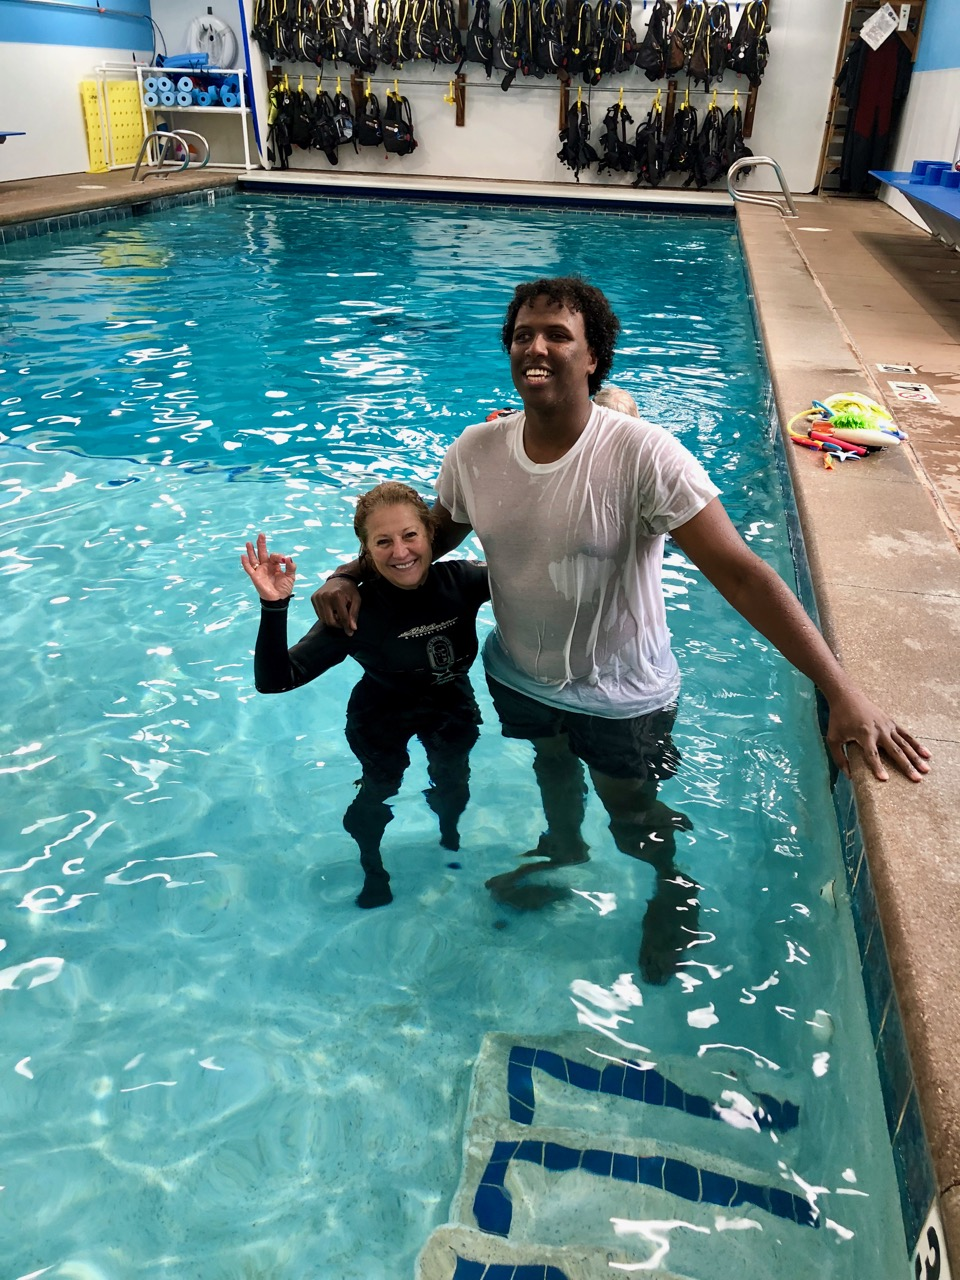 A tall young man in t-shirt stands with his petite, wet-suited instructor in the shallow end of the pool